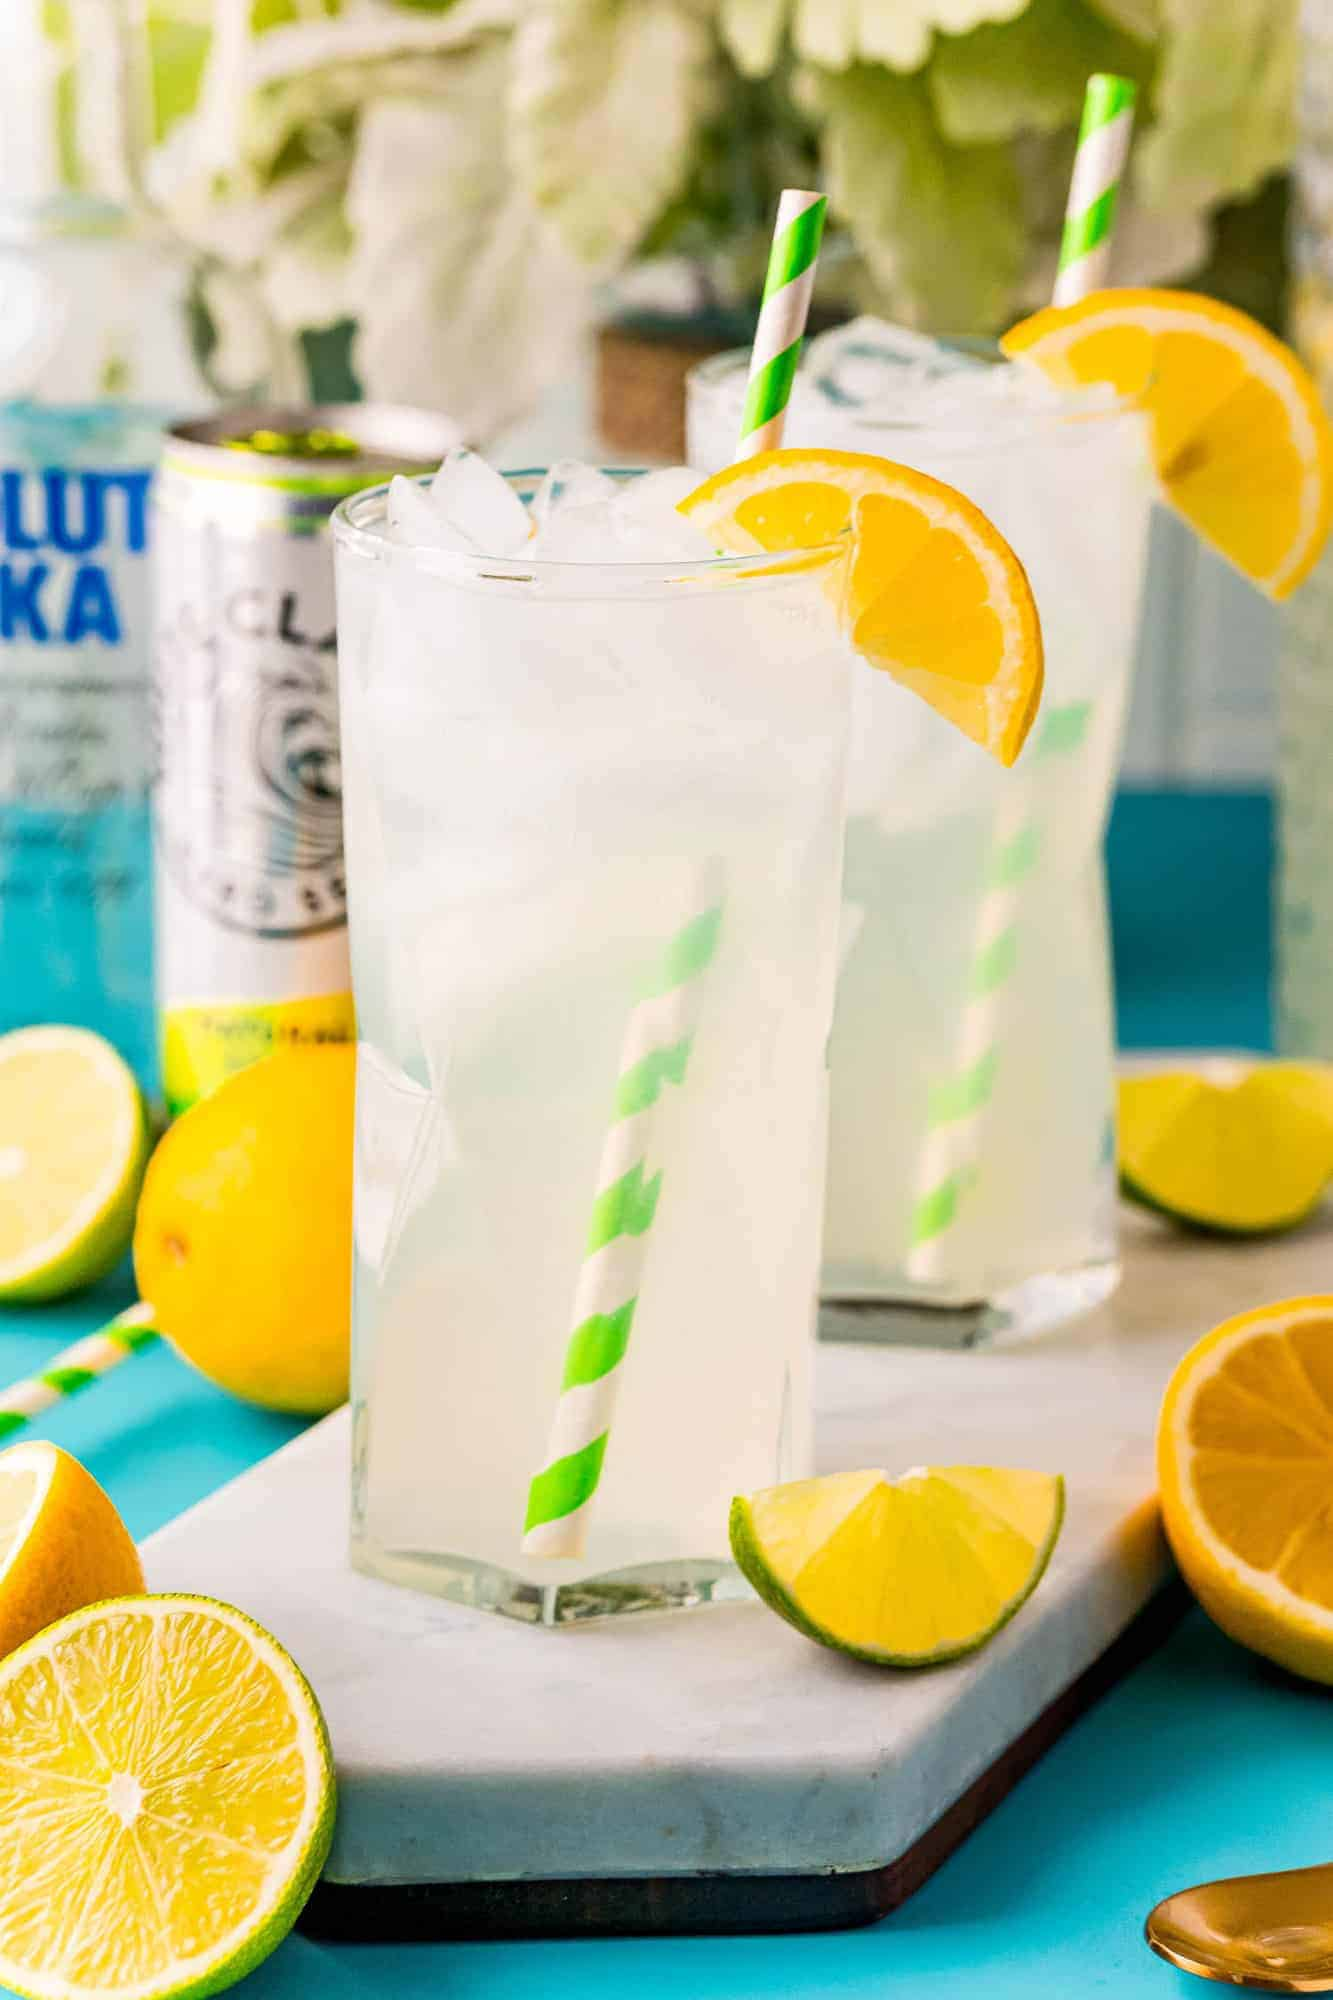 Two tall glasses of lemonade with green and white straws, a can of white claw in the background.